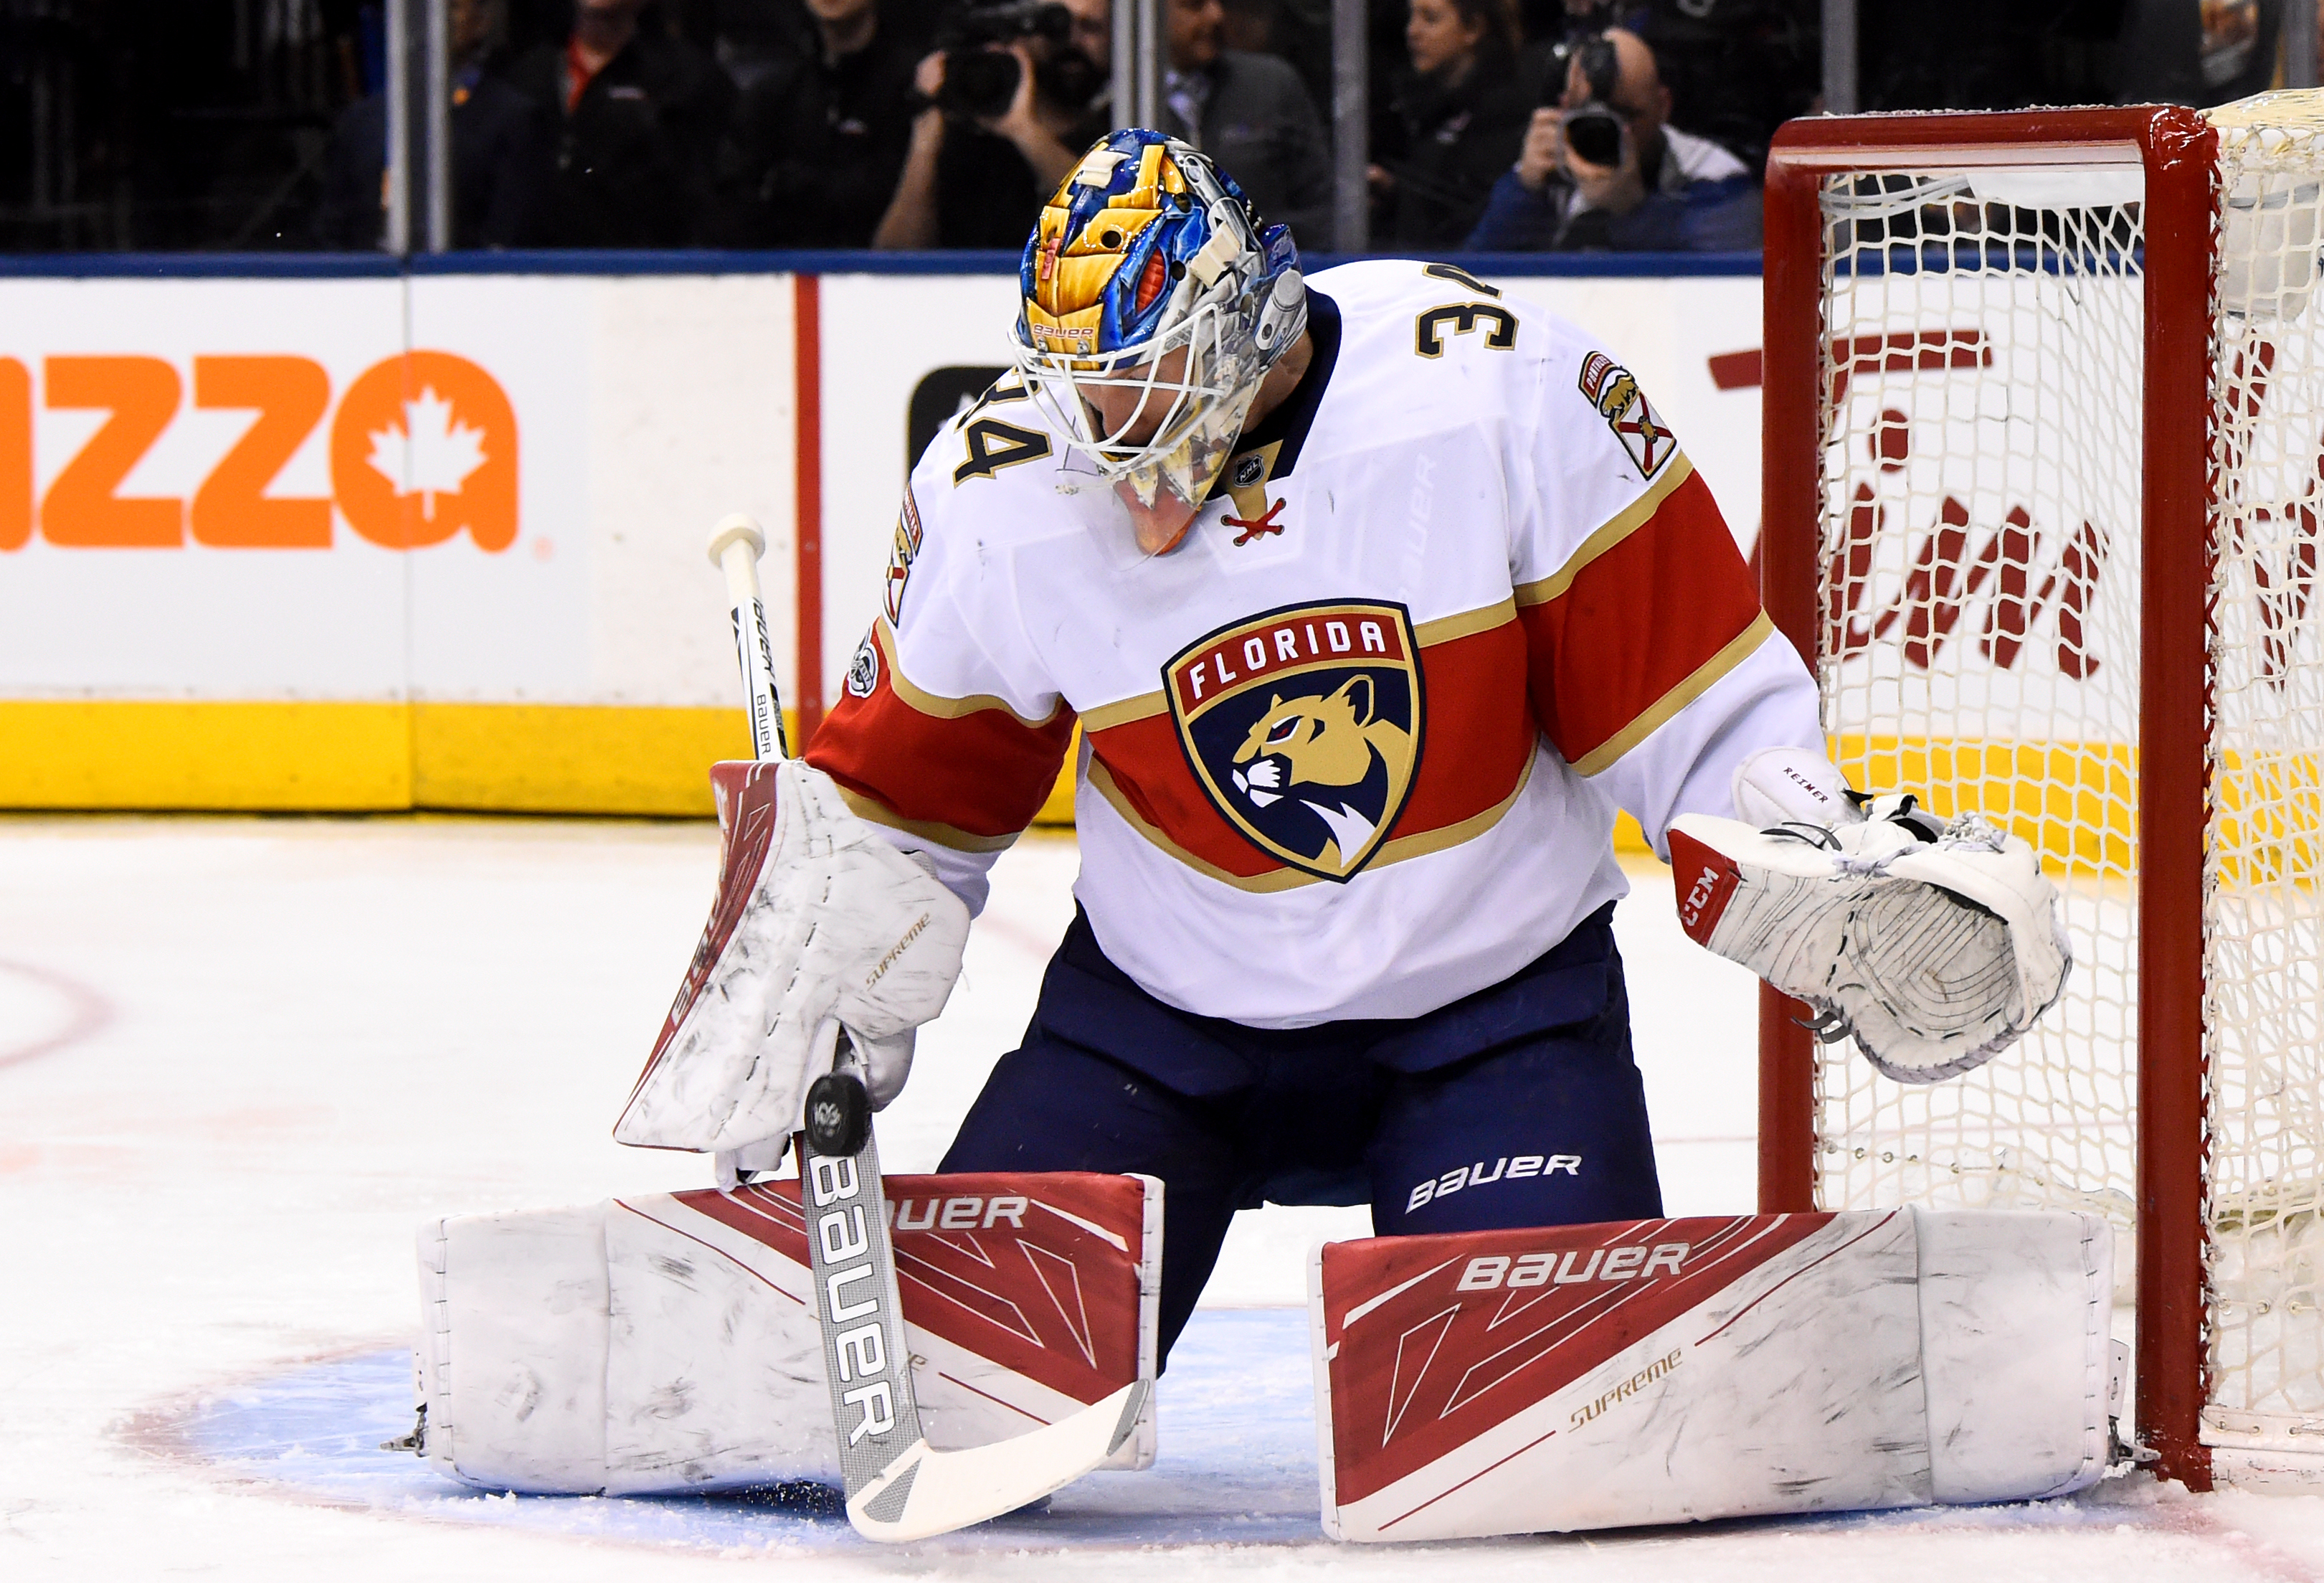 660359434-florida-panthers-v-toronto-maple-leafs.jpg